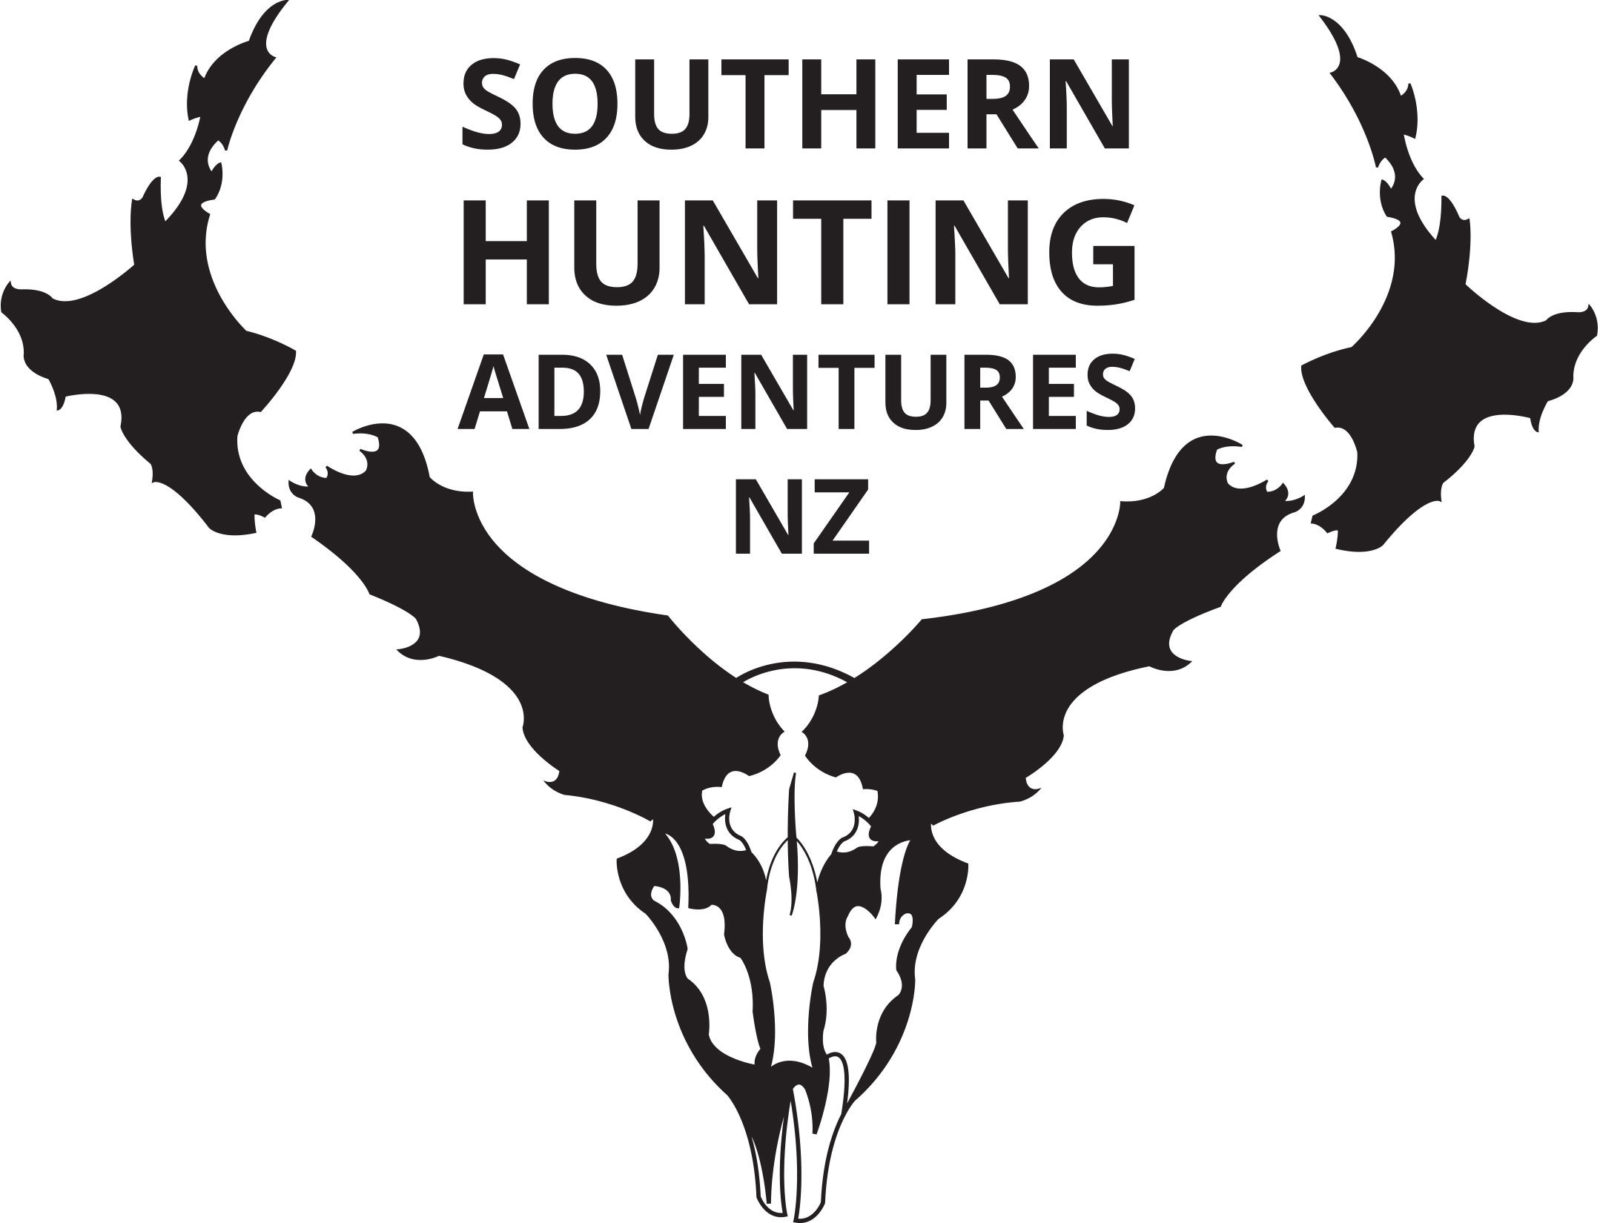 Southern Hunting Adventures New Zealand